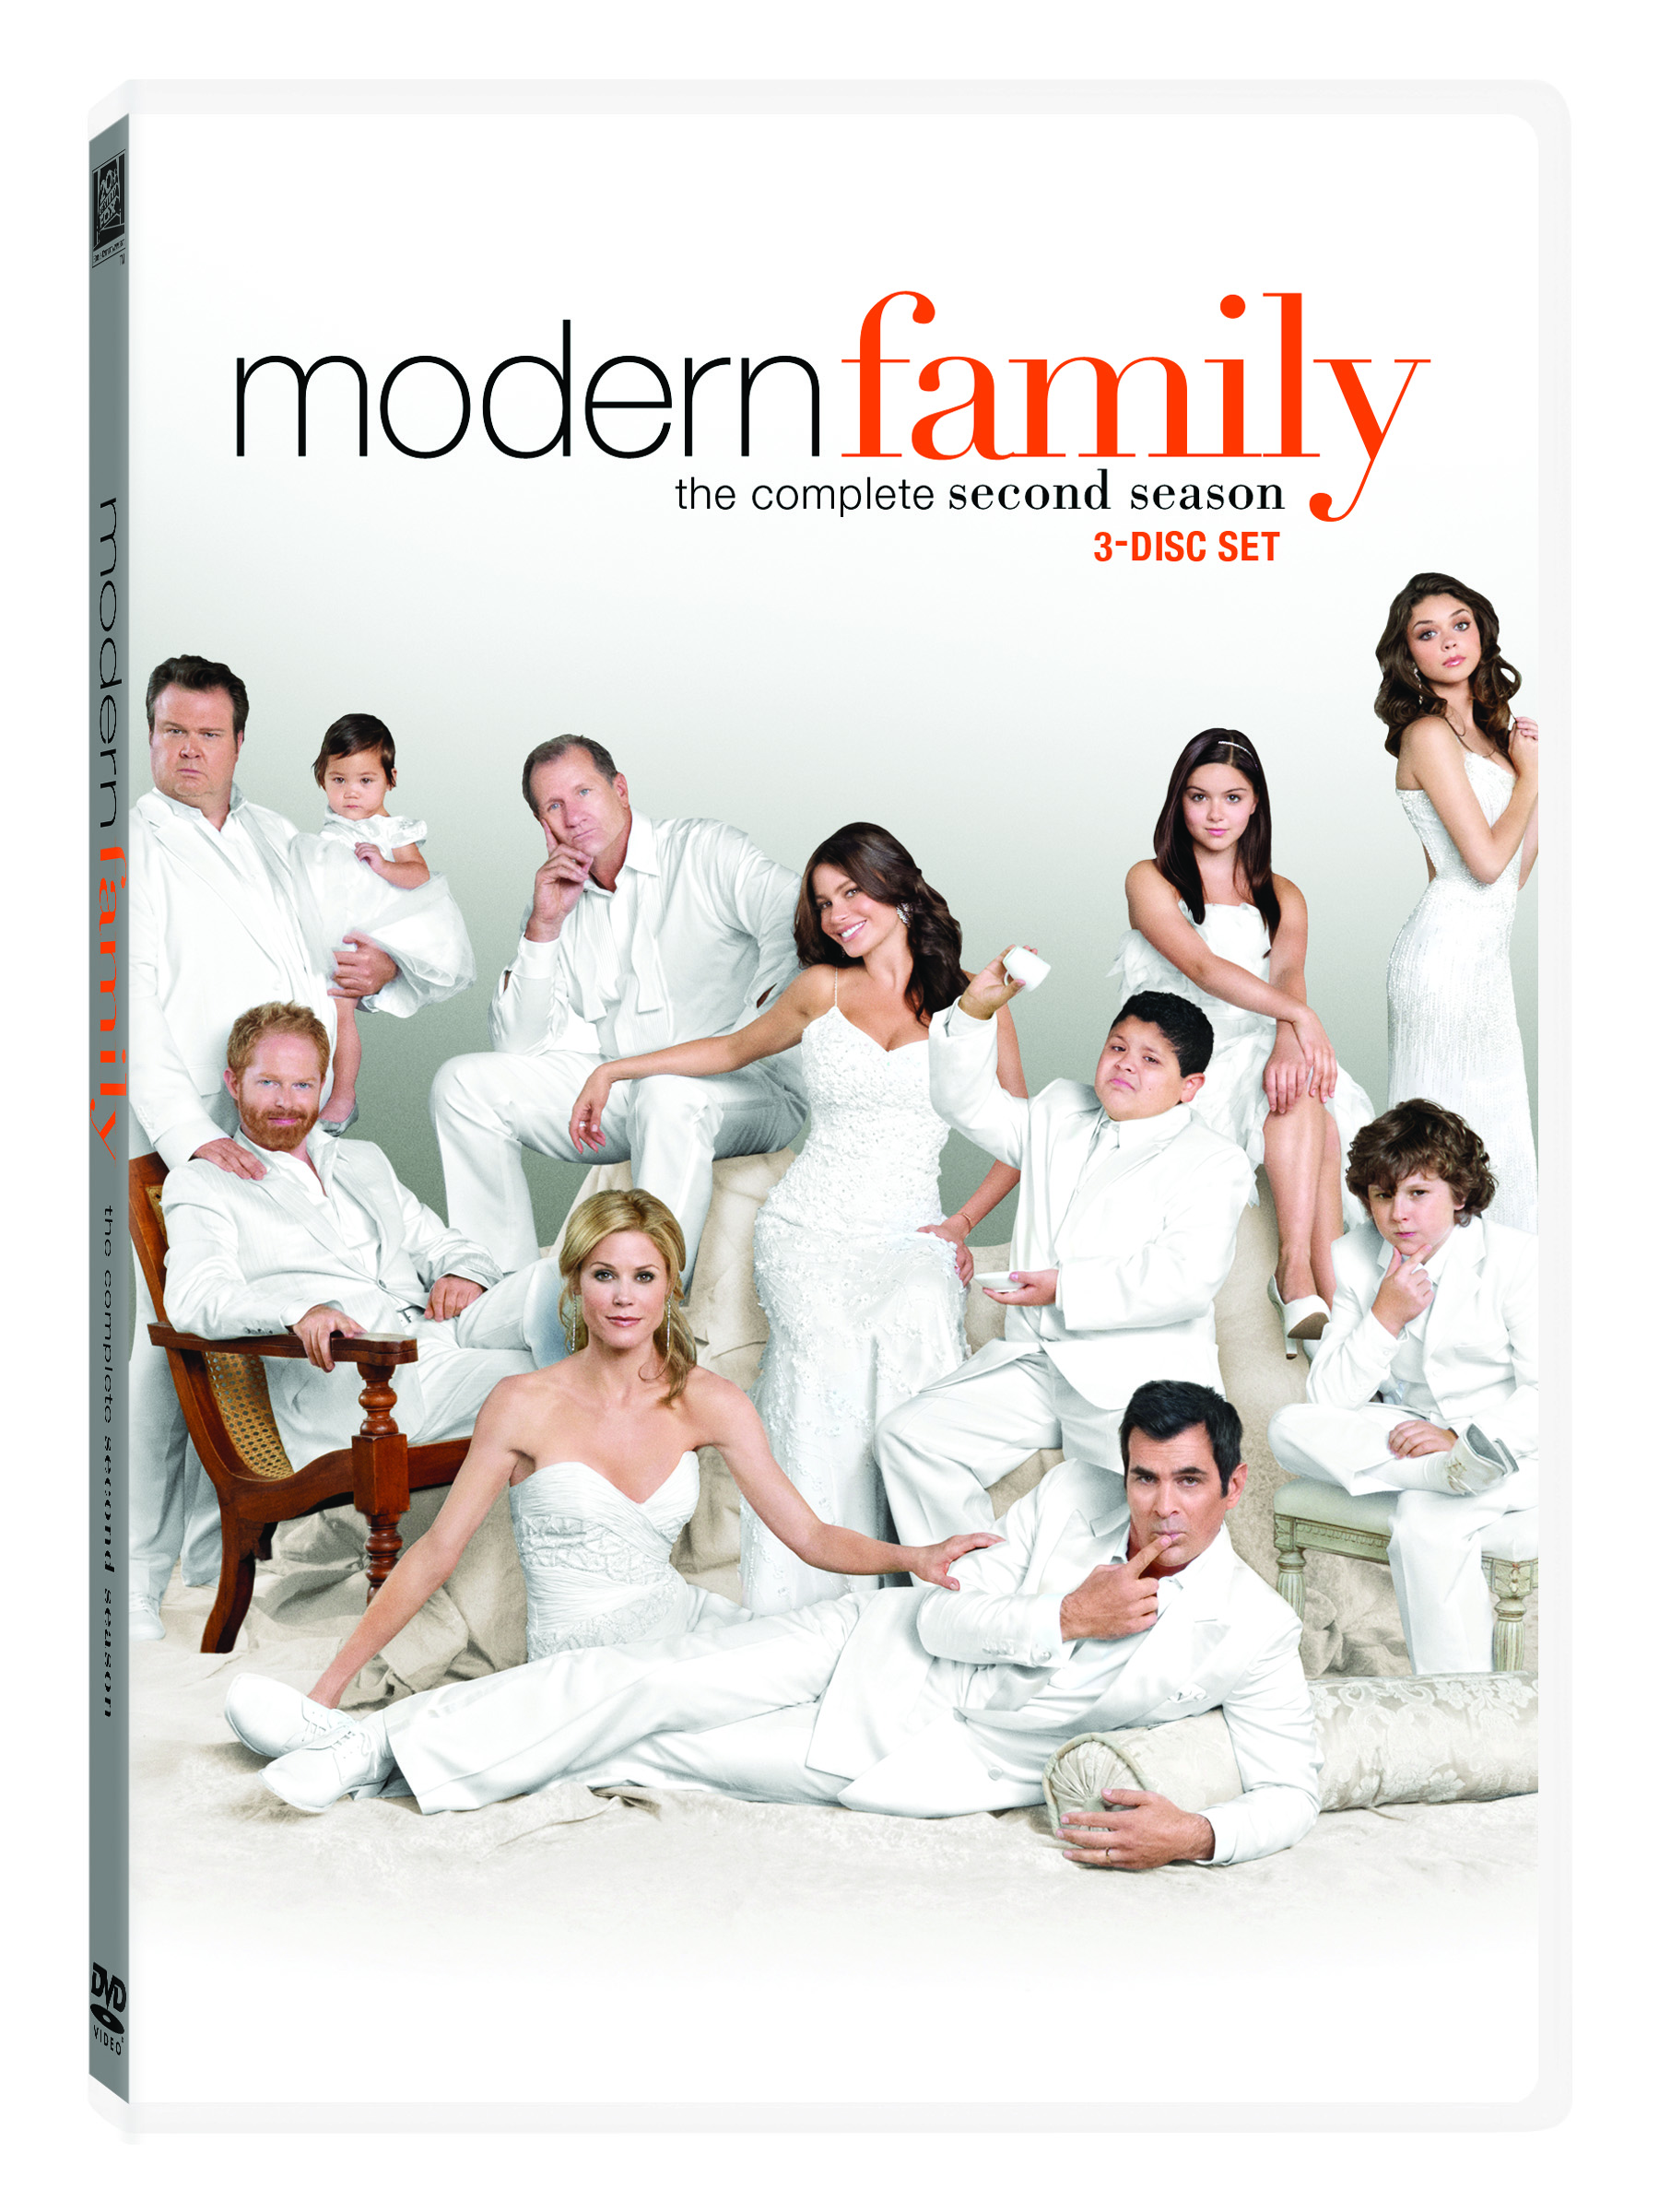 Modern Family: The Complete Second Season on DVD (Review & Giveaway)